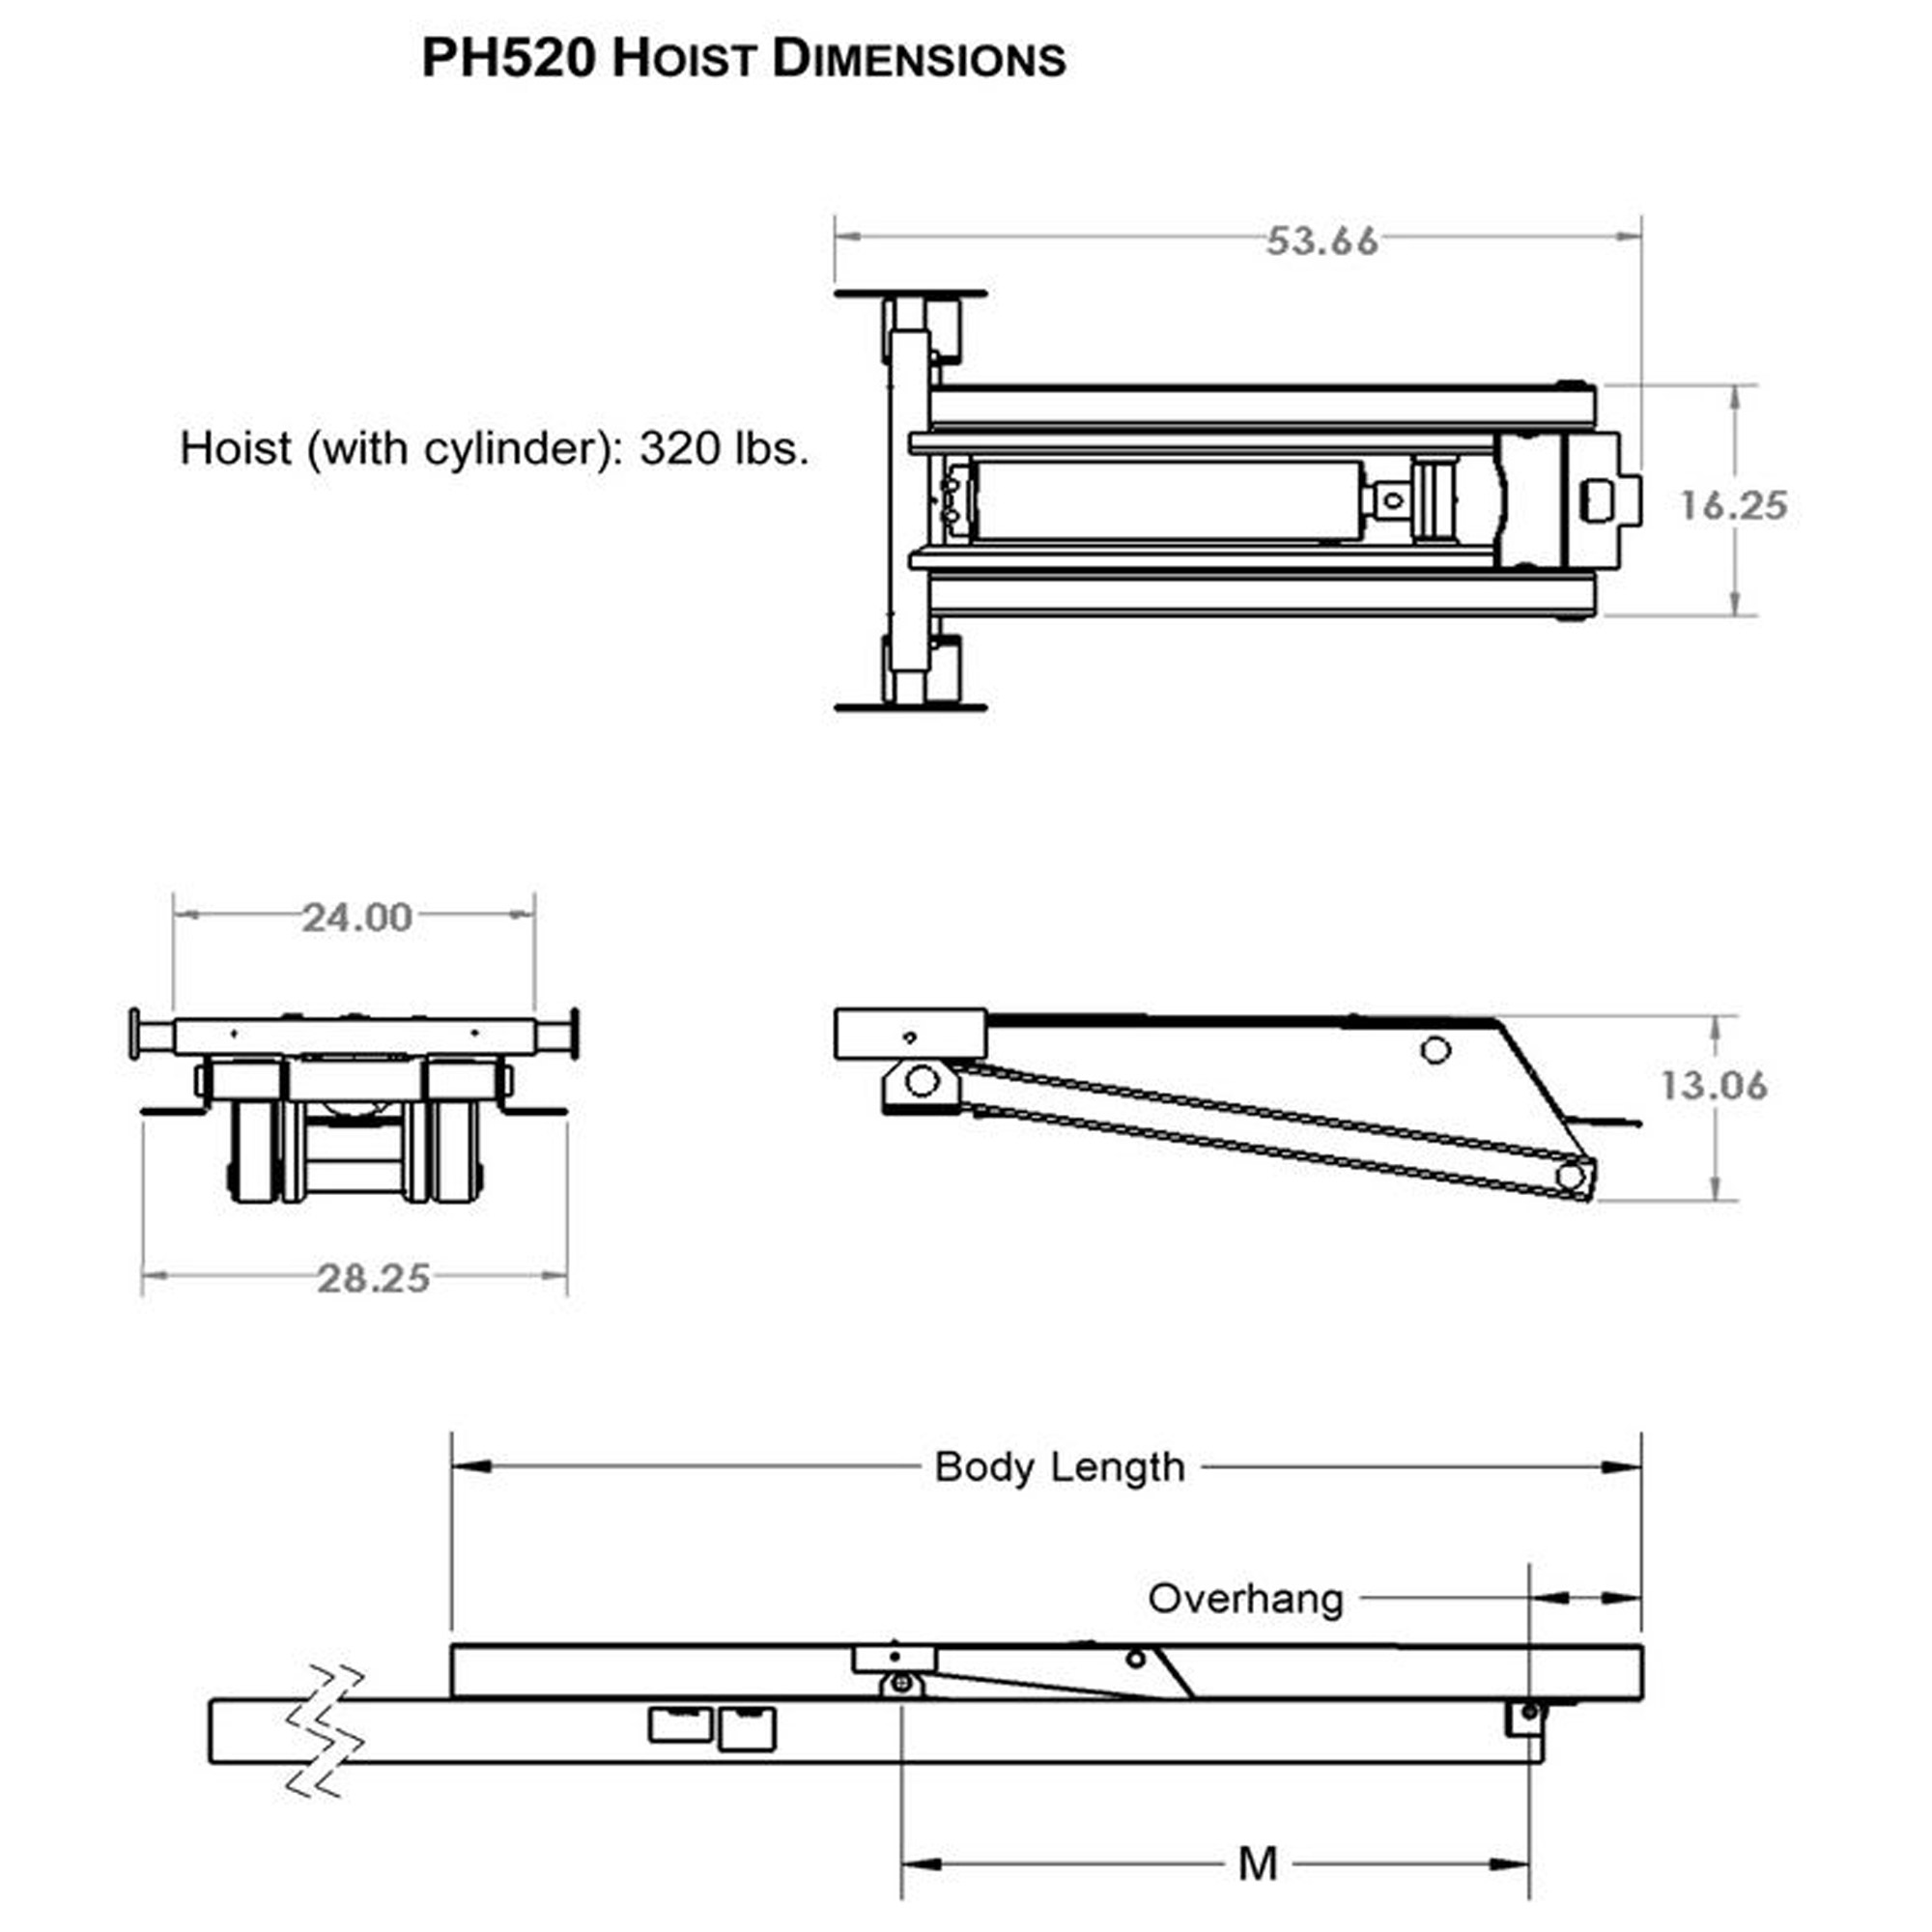 10 ton 20000 lb dump trailer hydraulic scissor hoist kit ph520 10 ton 20000 lb dump trailer hydraulic power hoist dimensions model ph520 diagram asfbconference2016 Choice Image